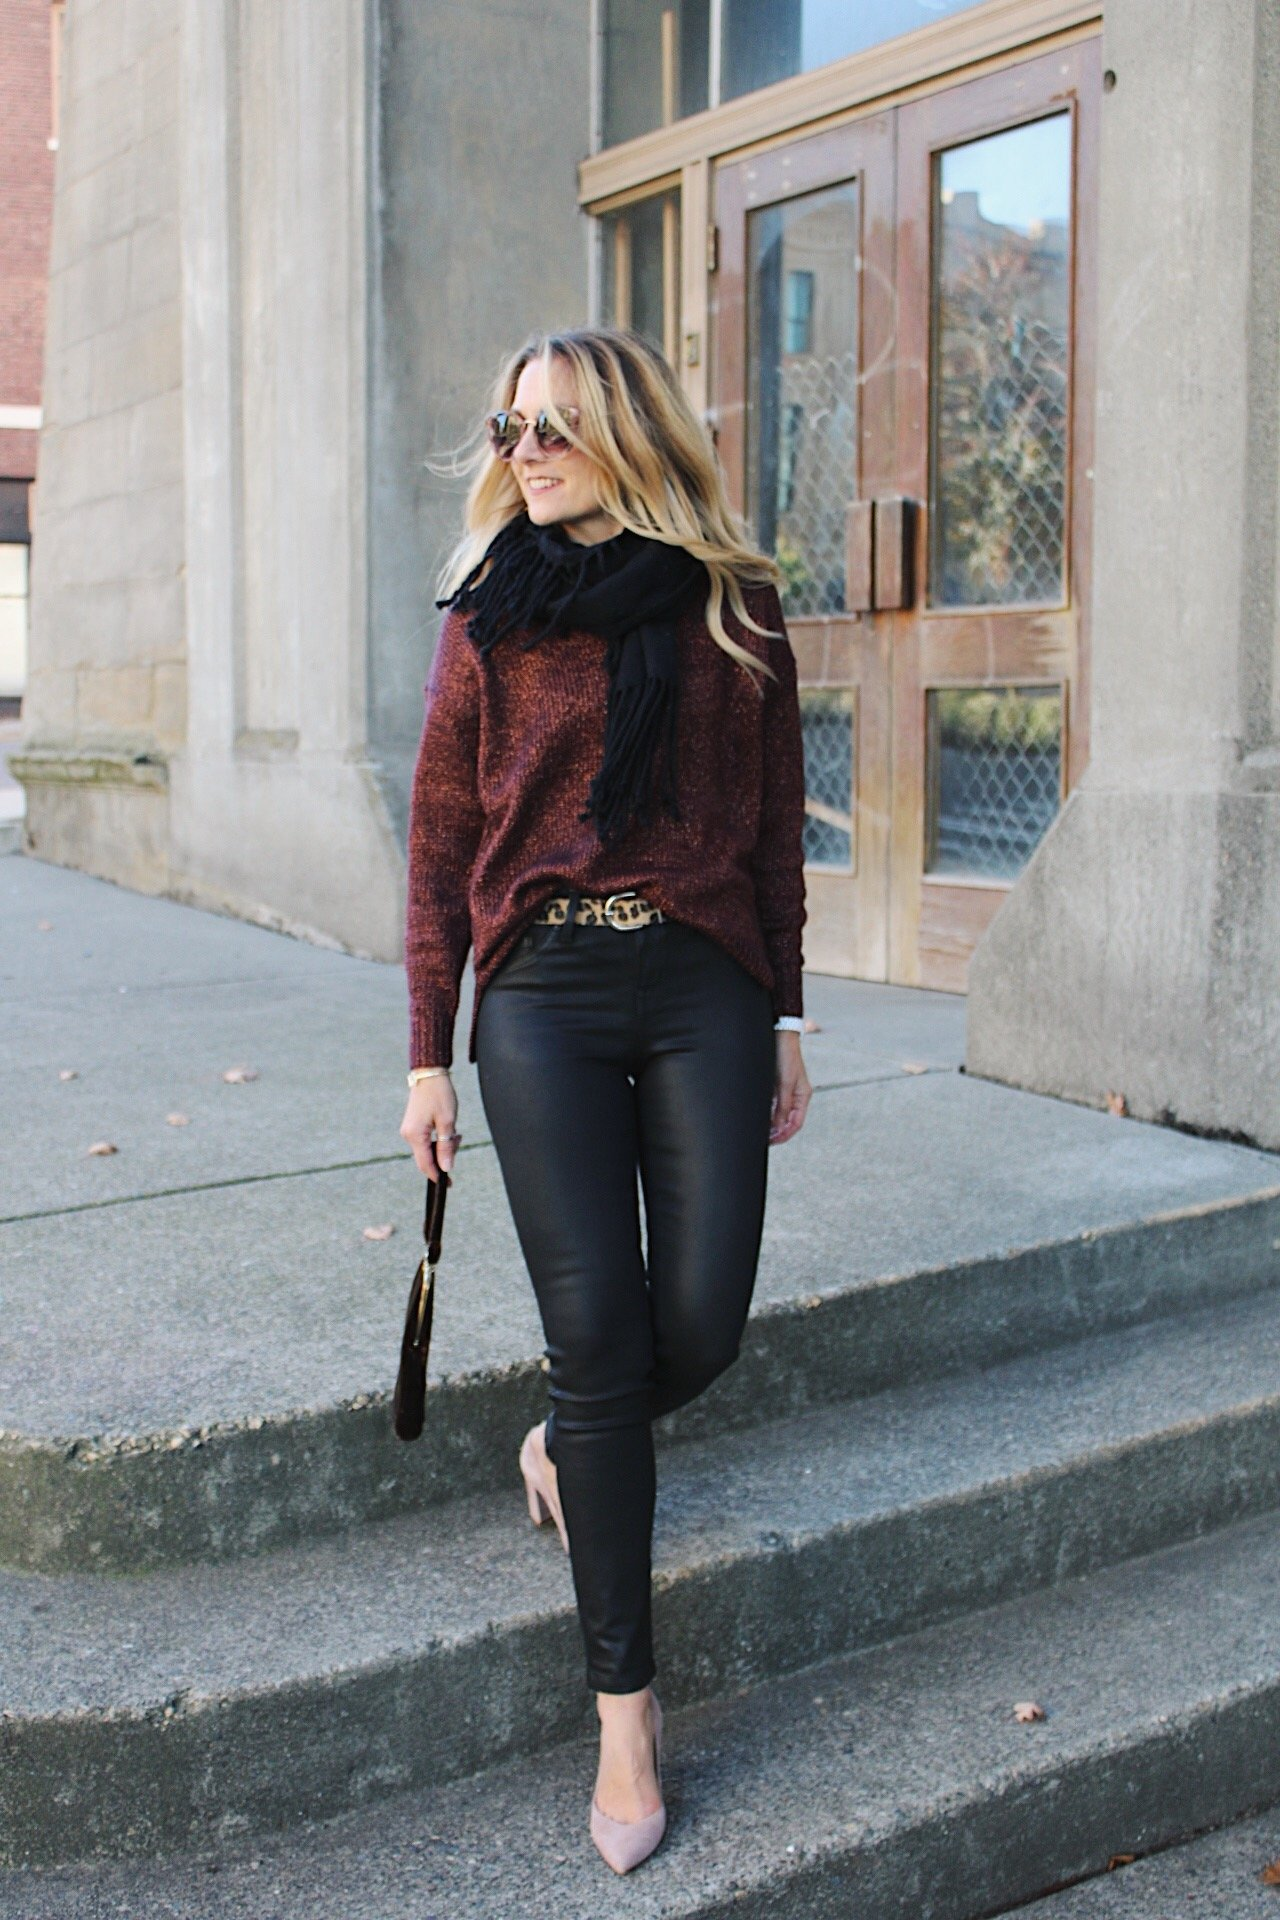 glitter sweater with leopard belt and coated black jeans and suede pumps